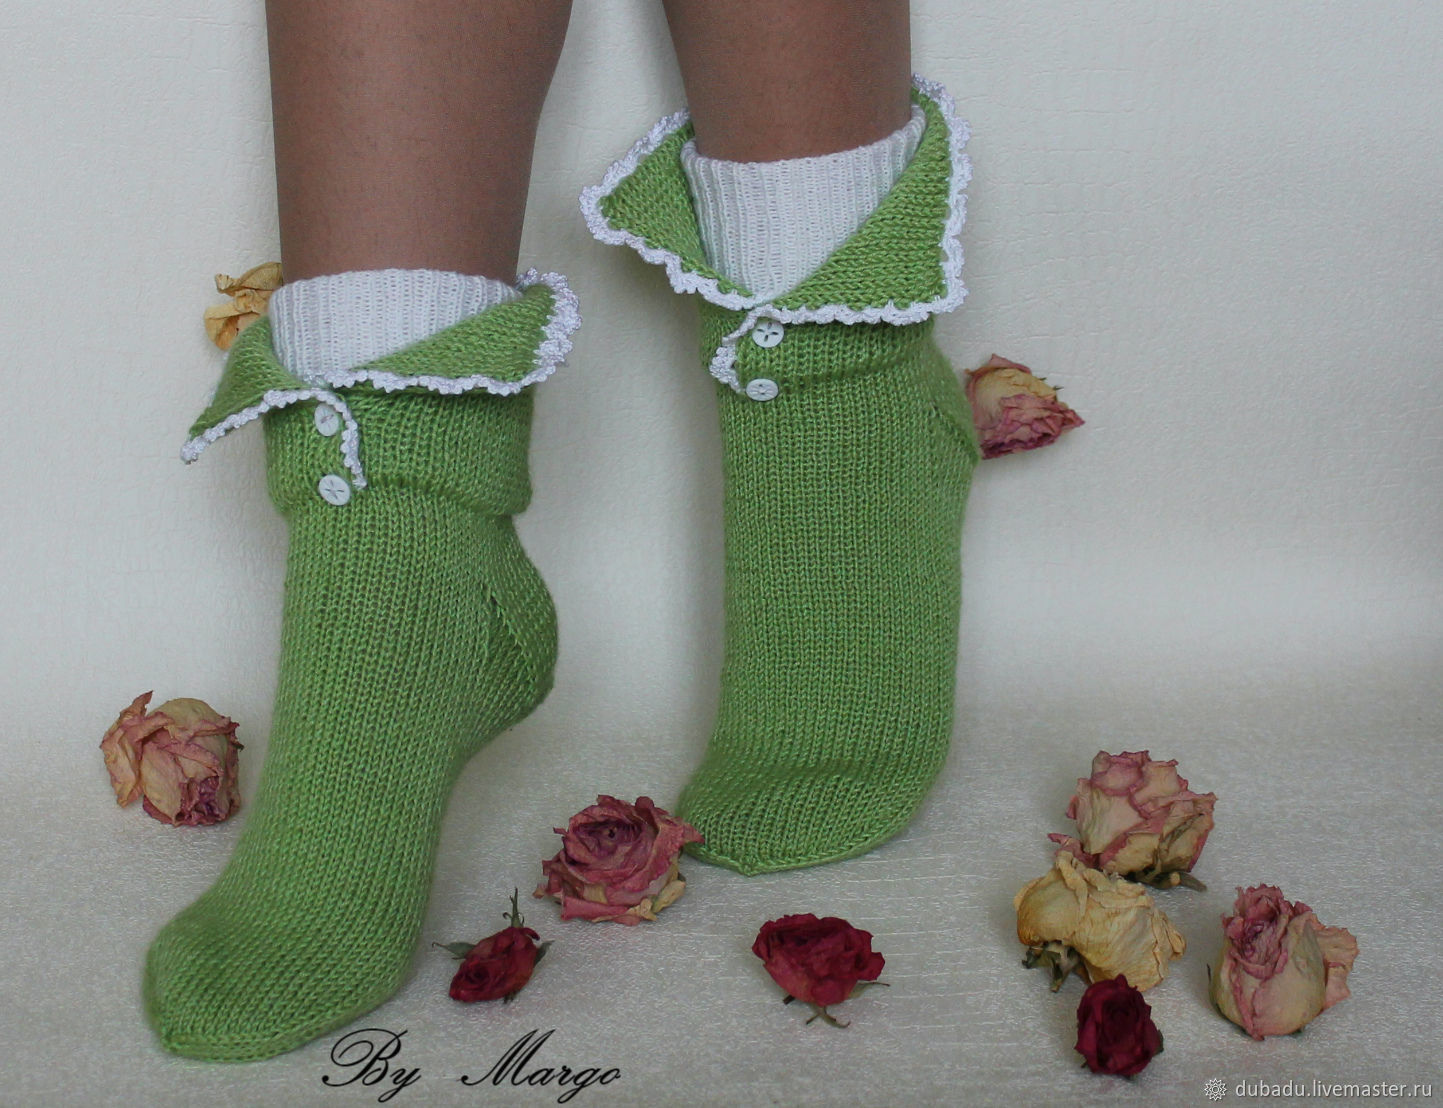 Knitted socks with lace, handmade, Socks, Moscow,  Фото №1